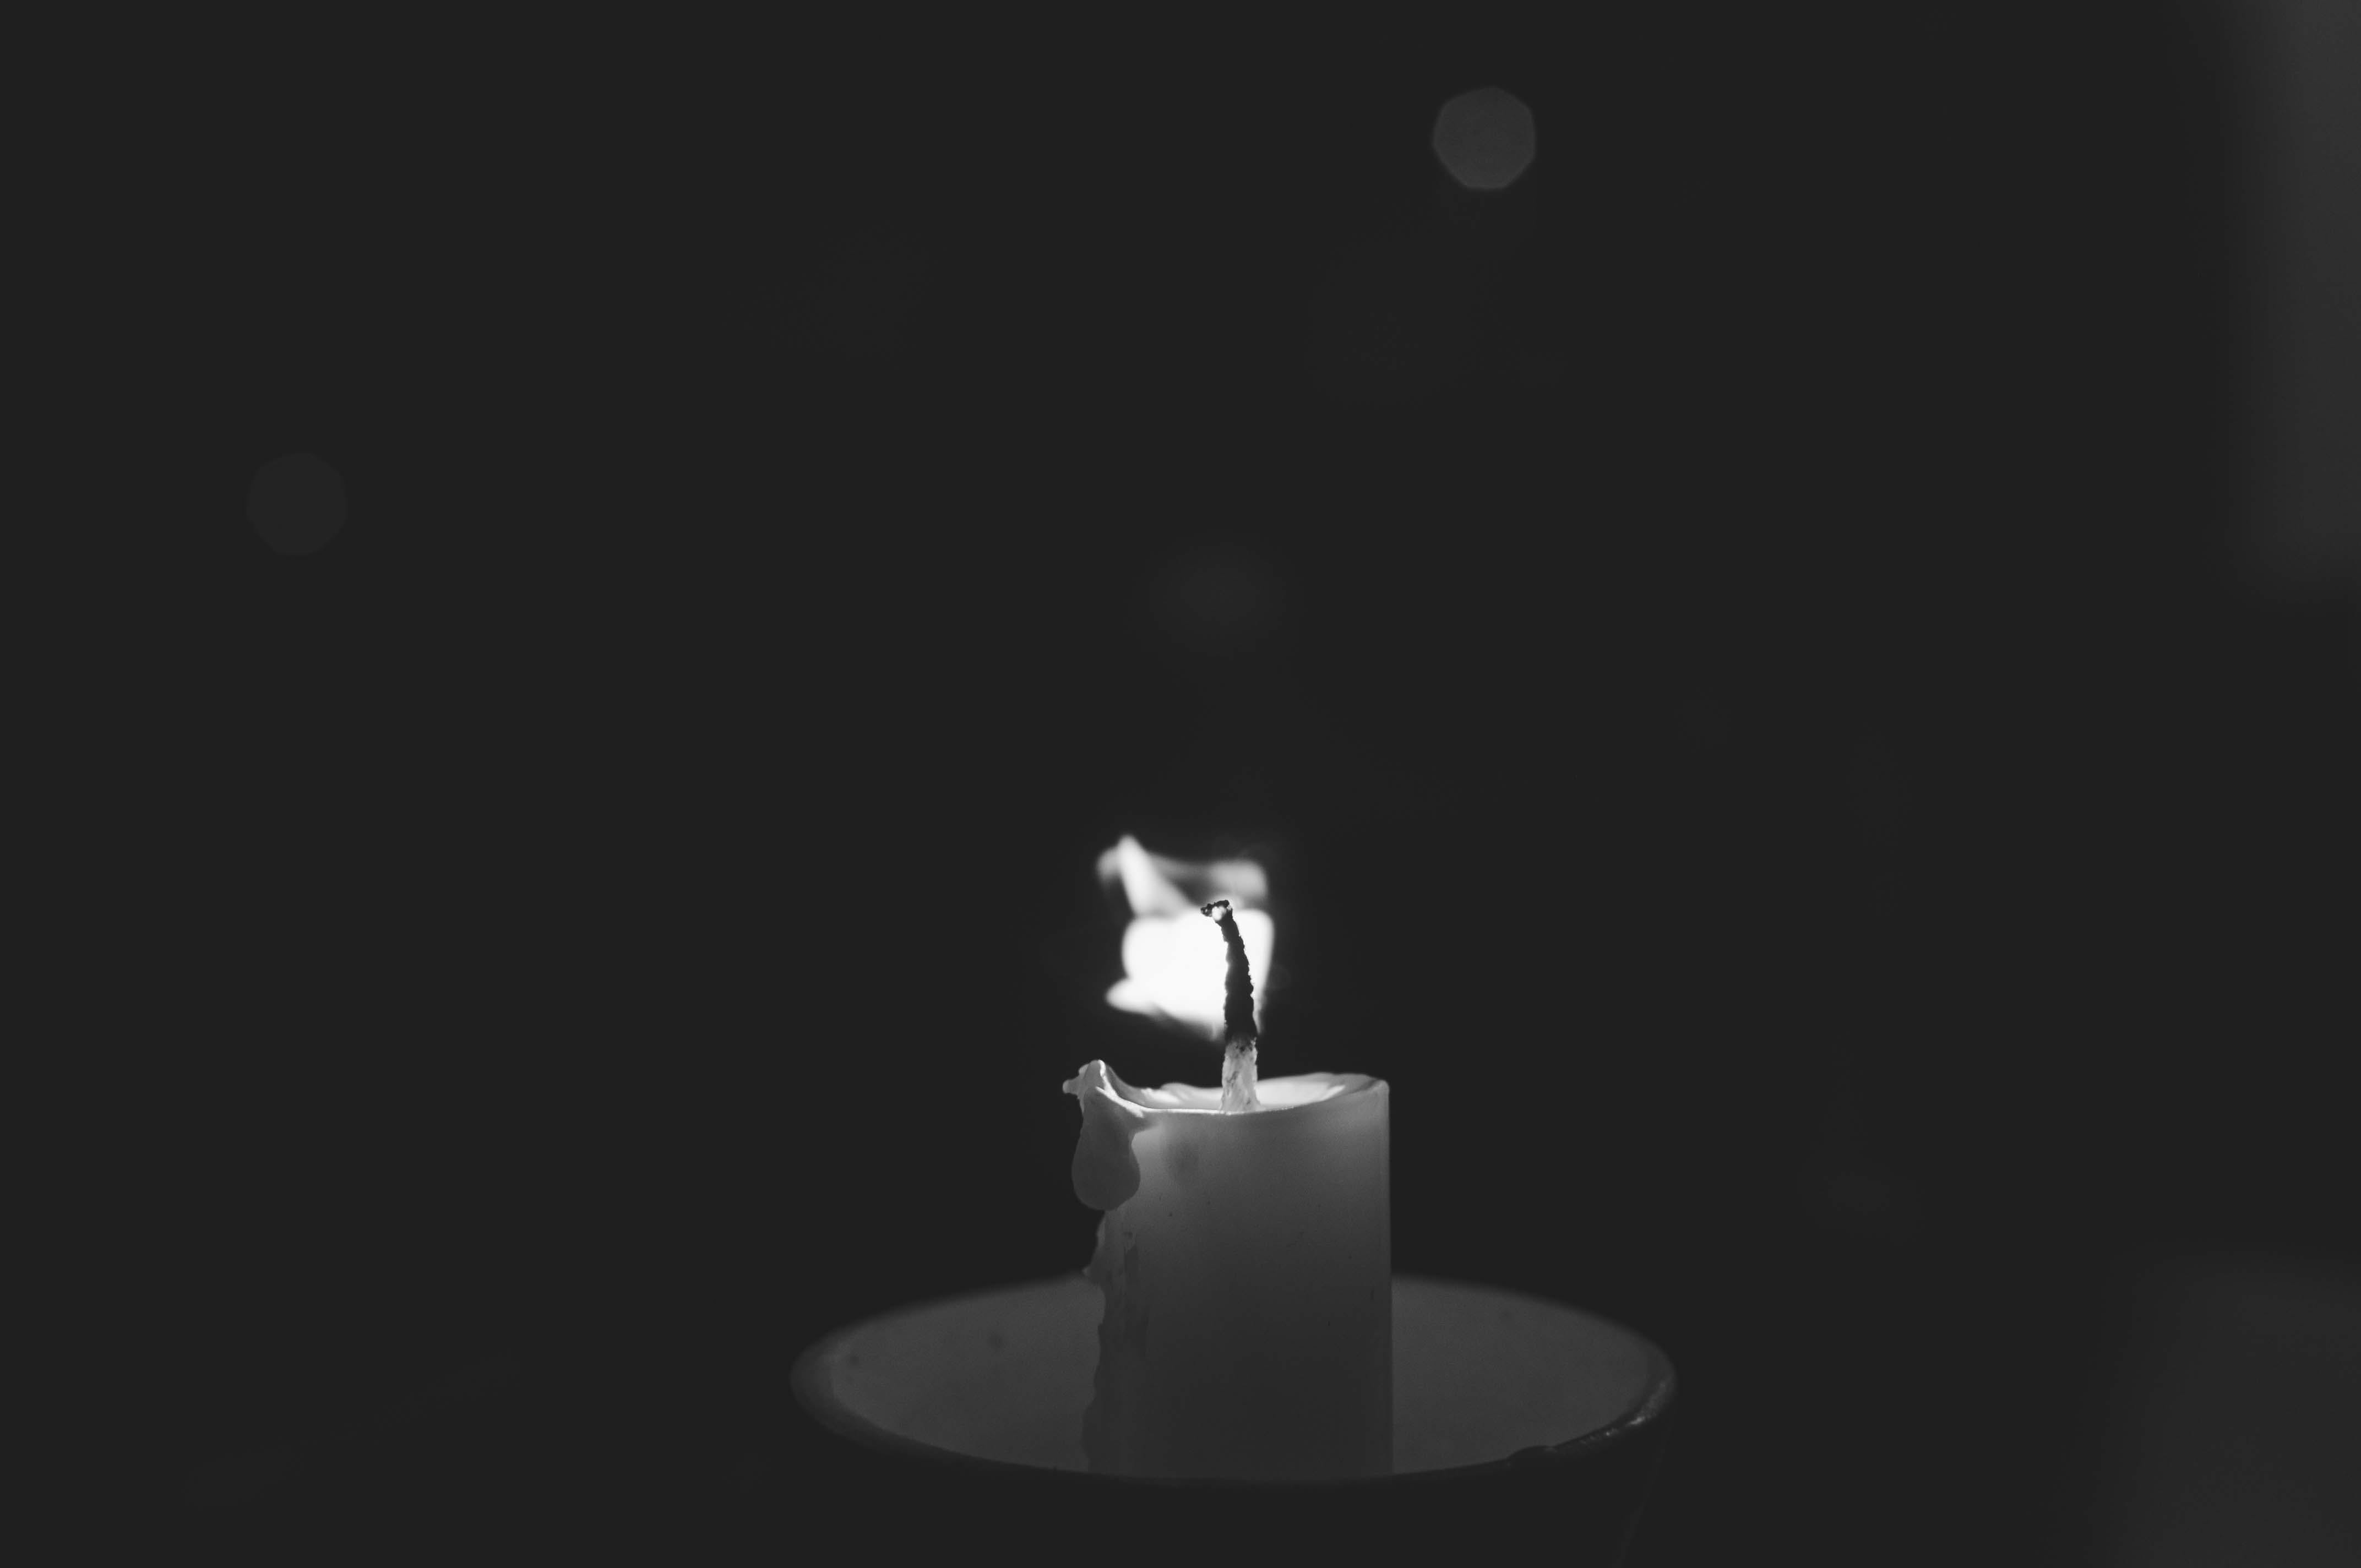 Free stock photo of black and white, black and white photograph, burning, candle